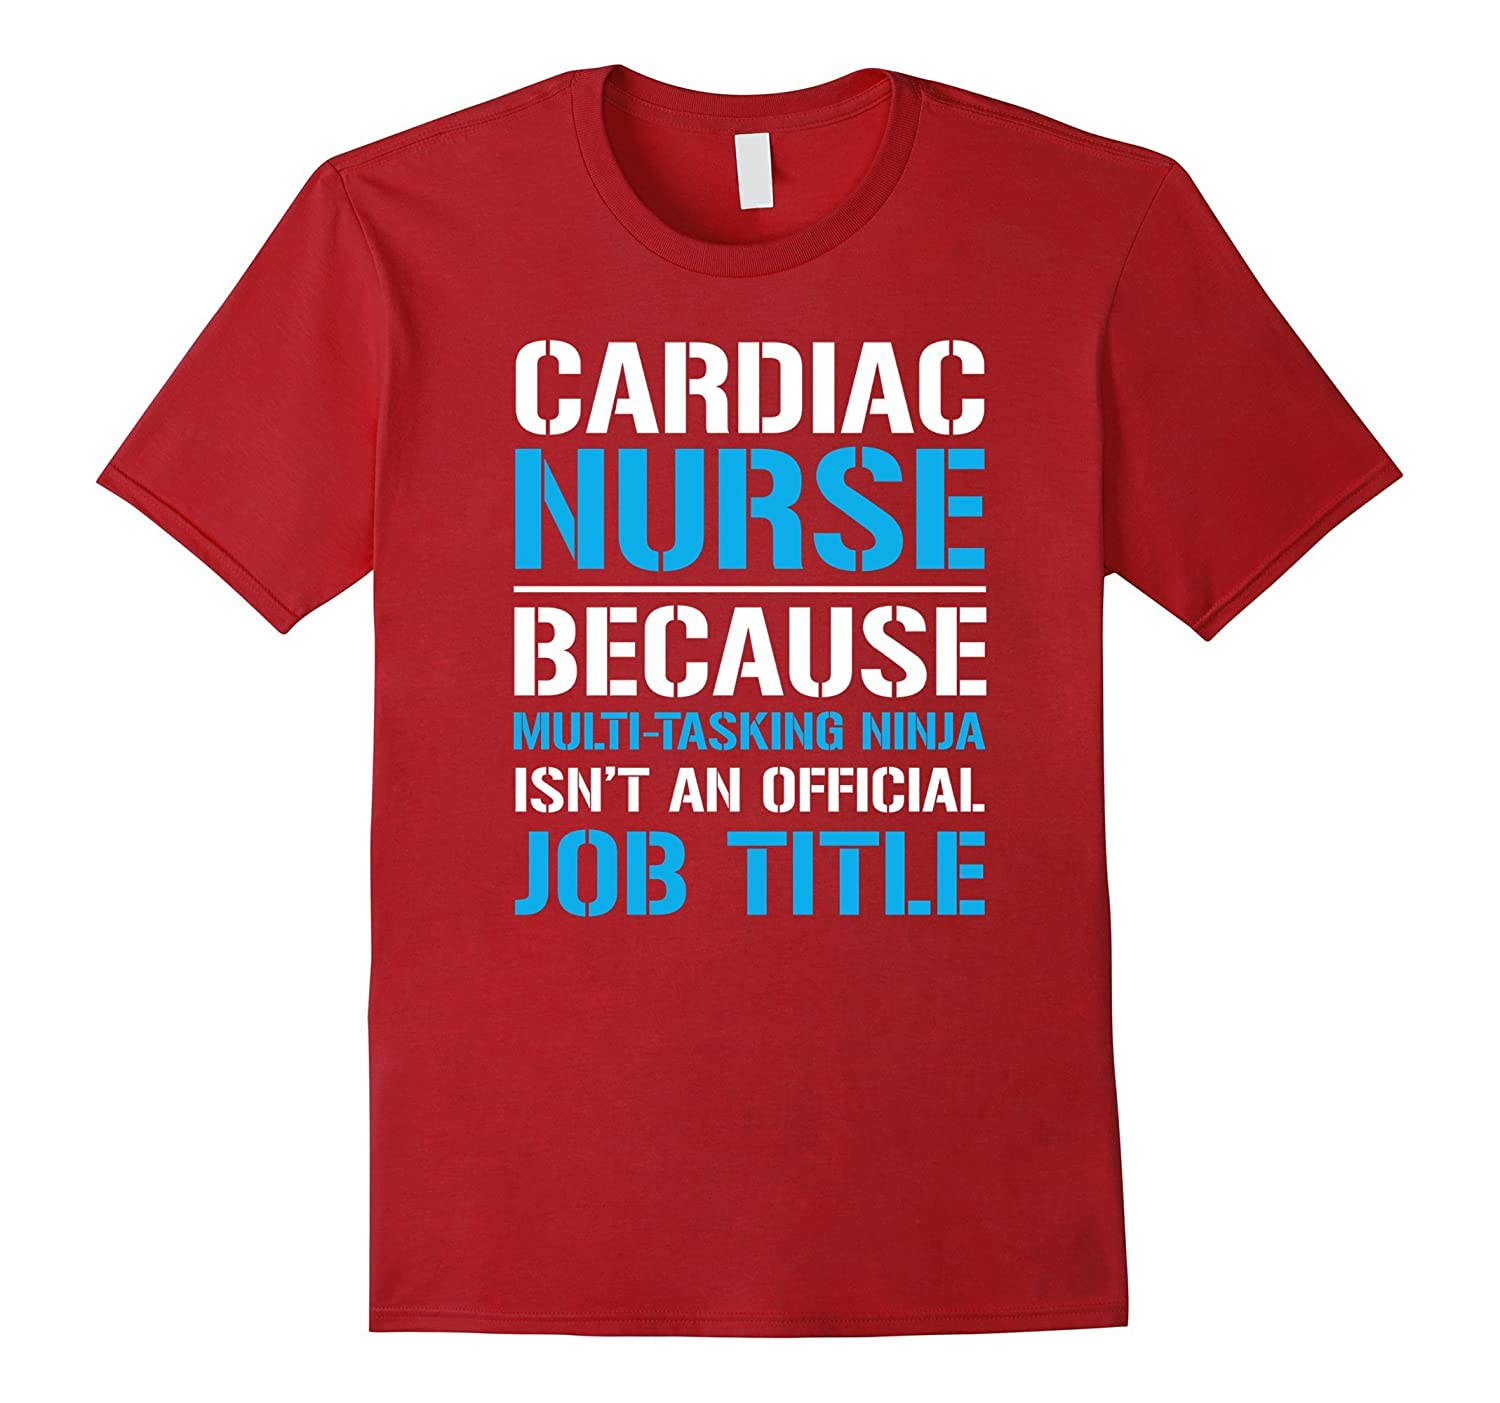 cardiac nurse because multi tasking ninja t shirt tj theteejob